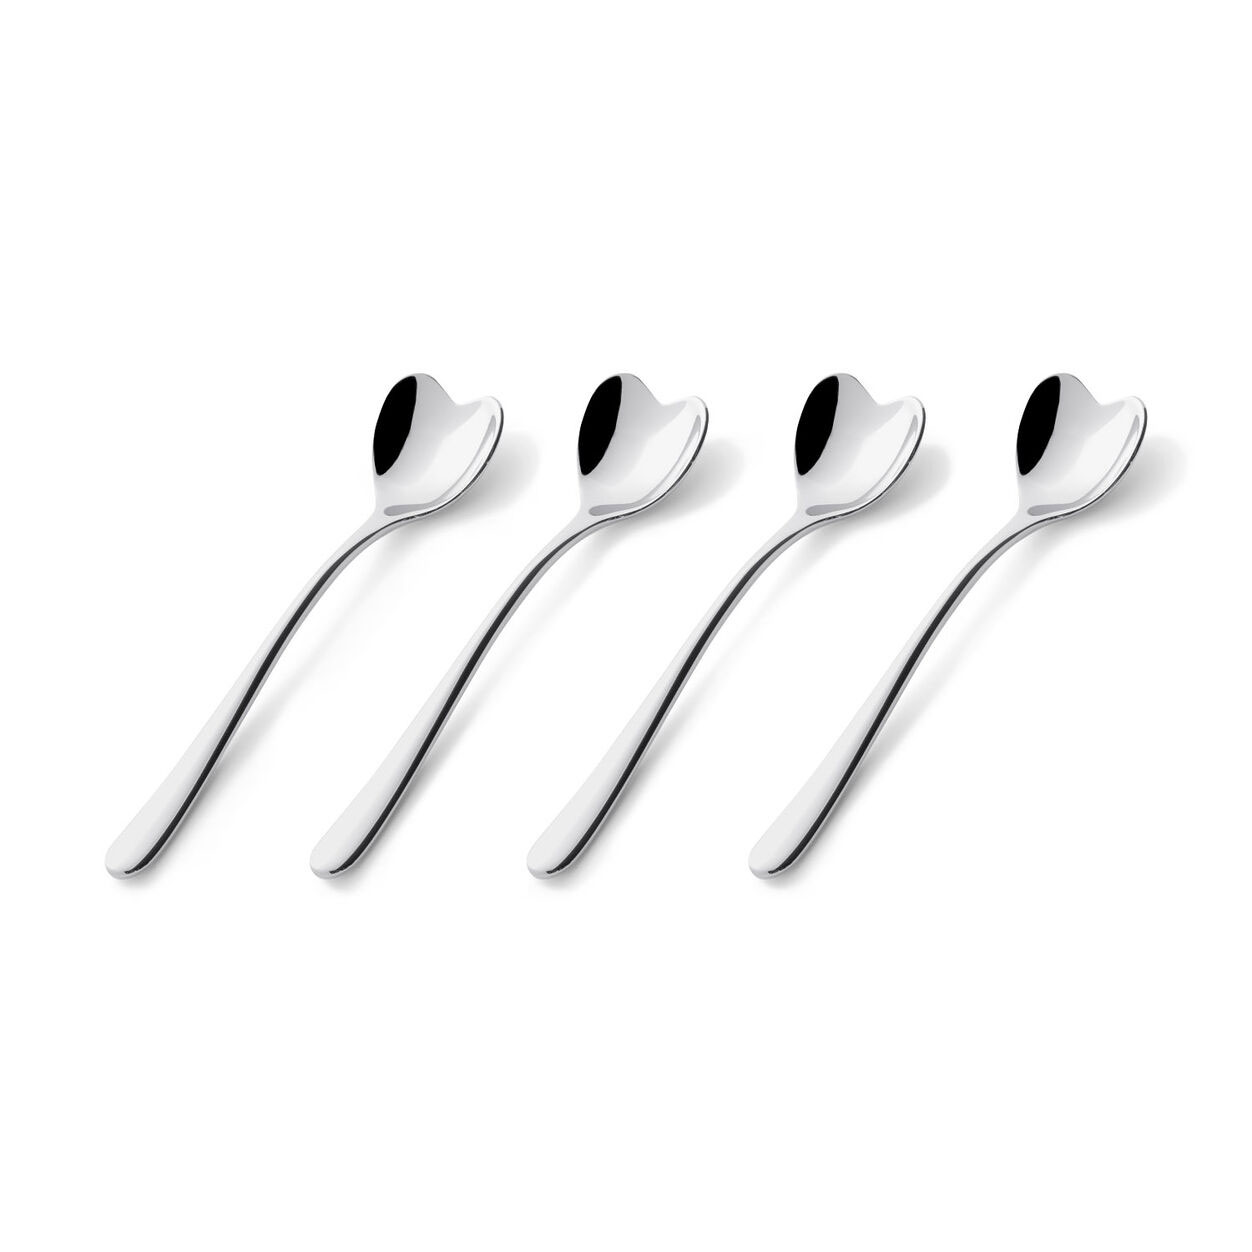 Best gifts, gift ideas for women - Big Love Ice Cream Spoon Set